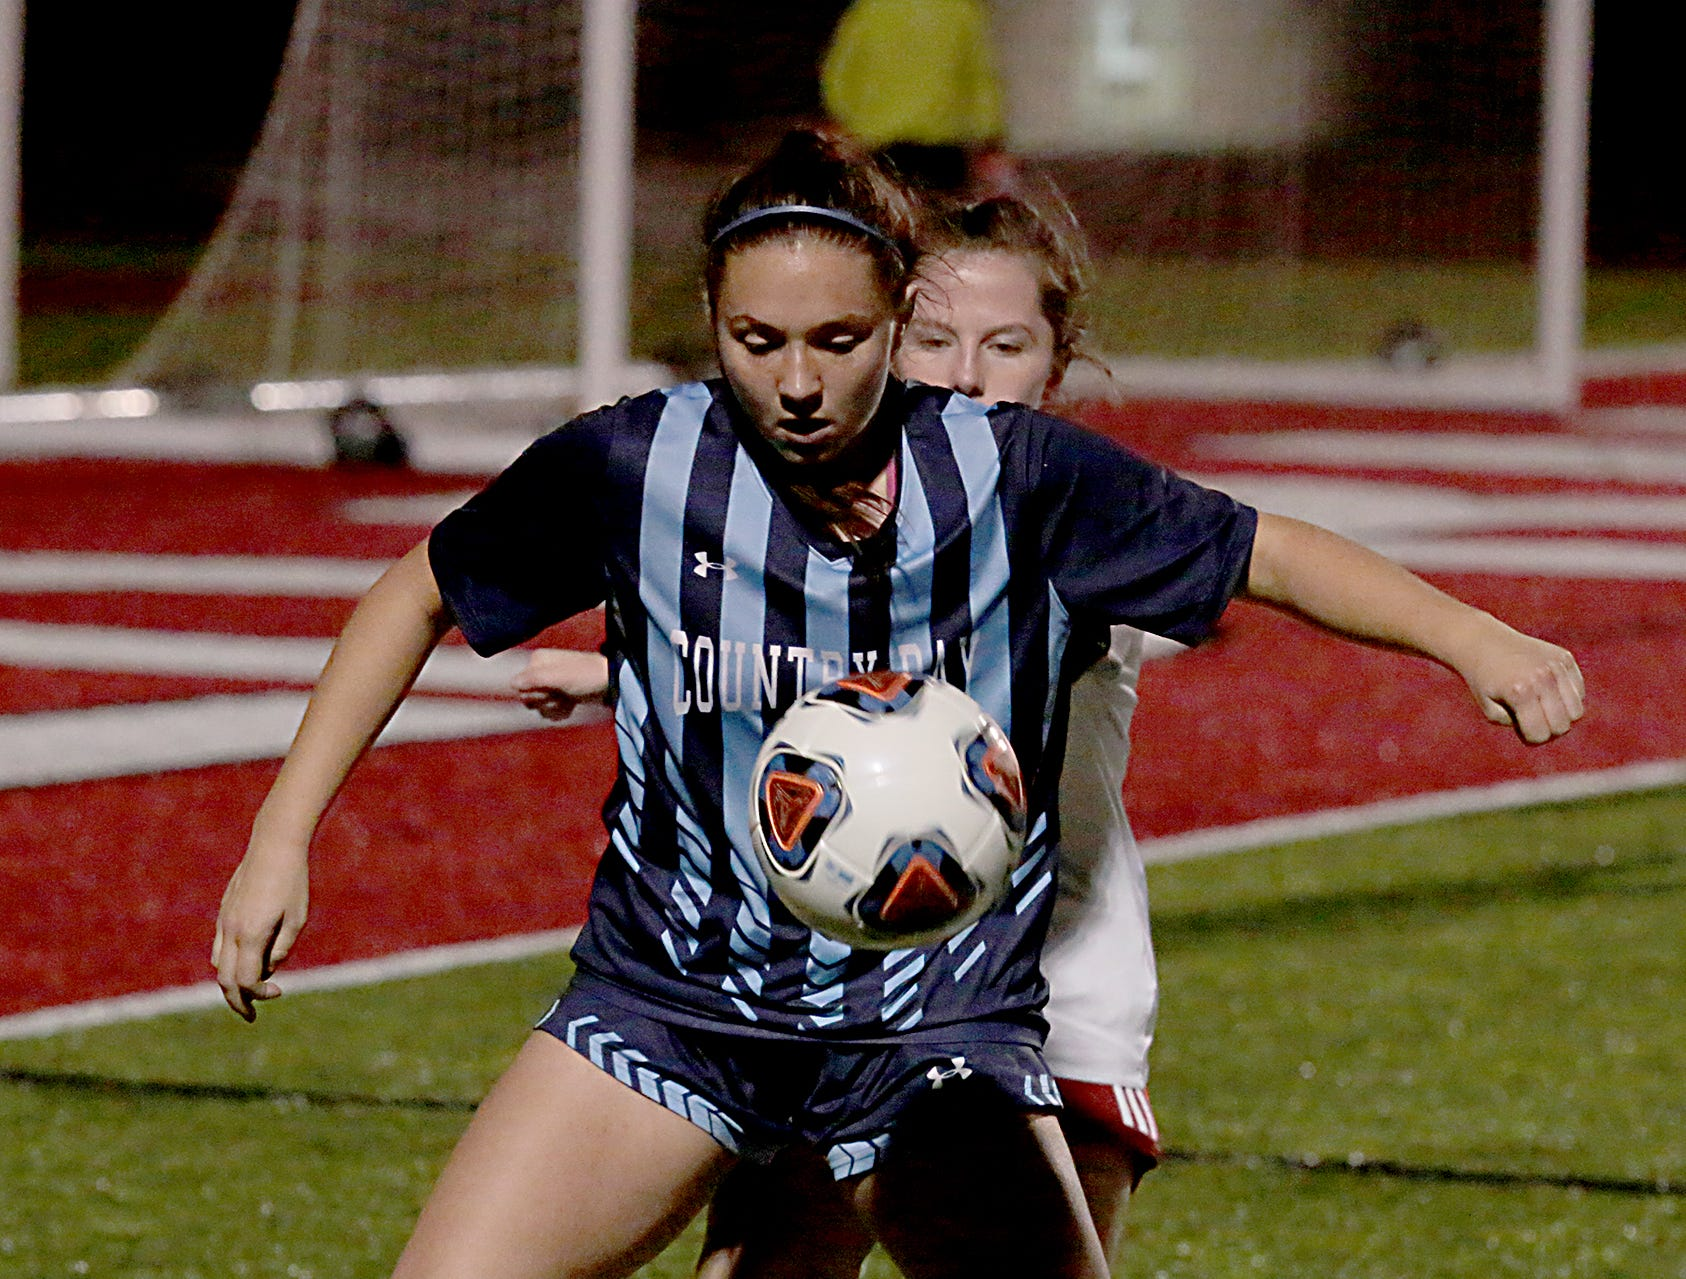 Cincinnati Country Day midfielder Chloe Webb controls the ball against Bishop Rosecrans during their girls division III state semifinal at London Tuesday, Nov. 6, 2018.